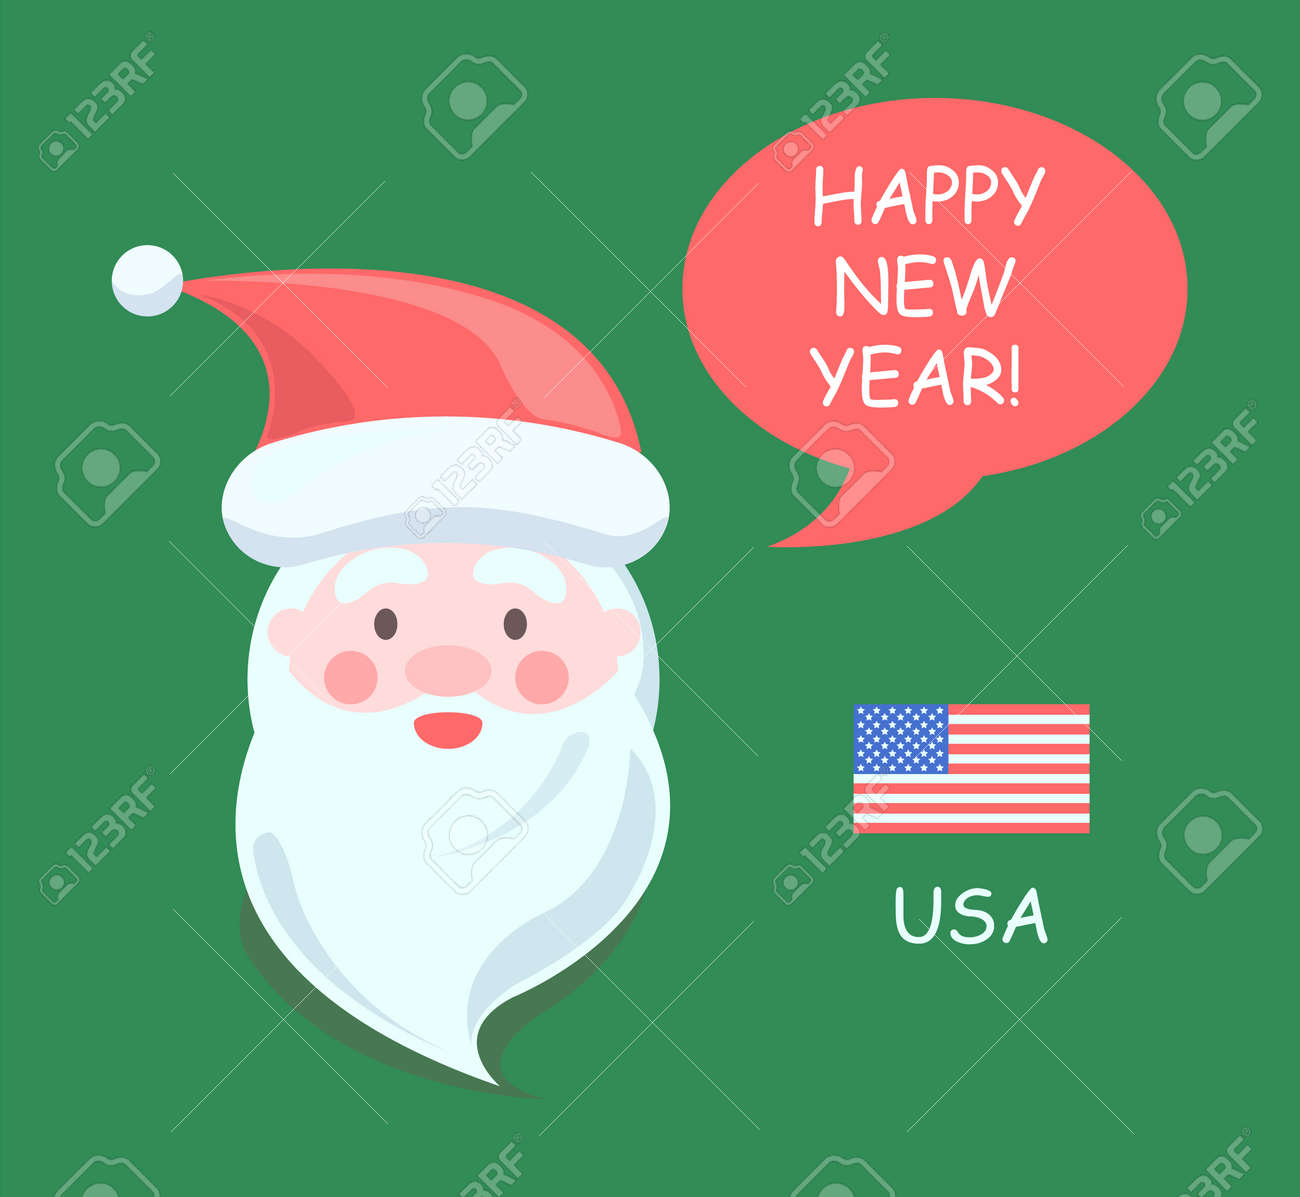 usa santa claus greeting people happy new year man wearing red hat and has long